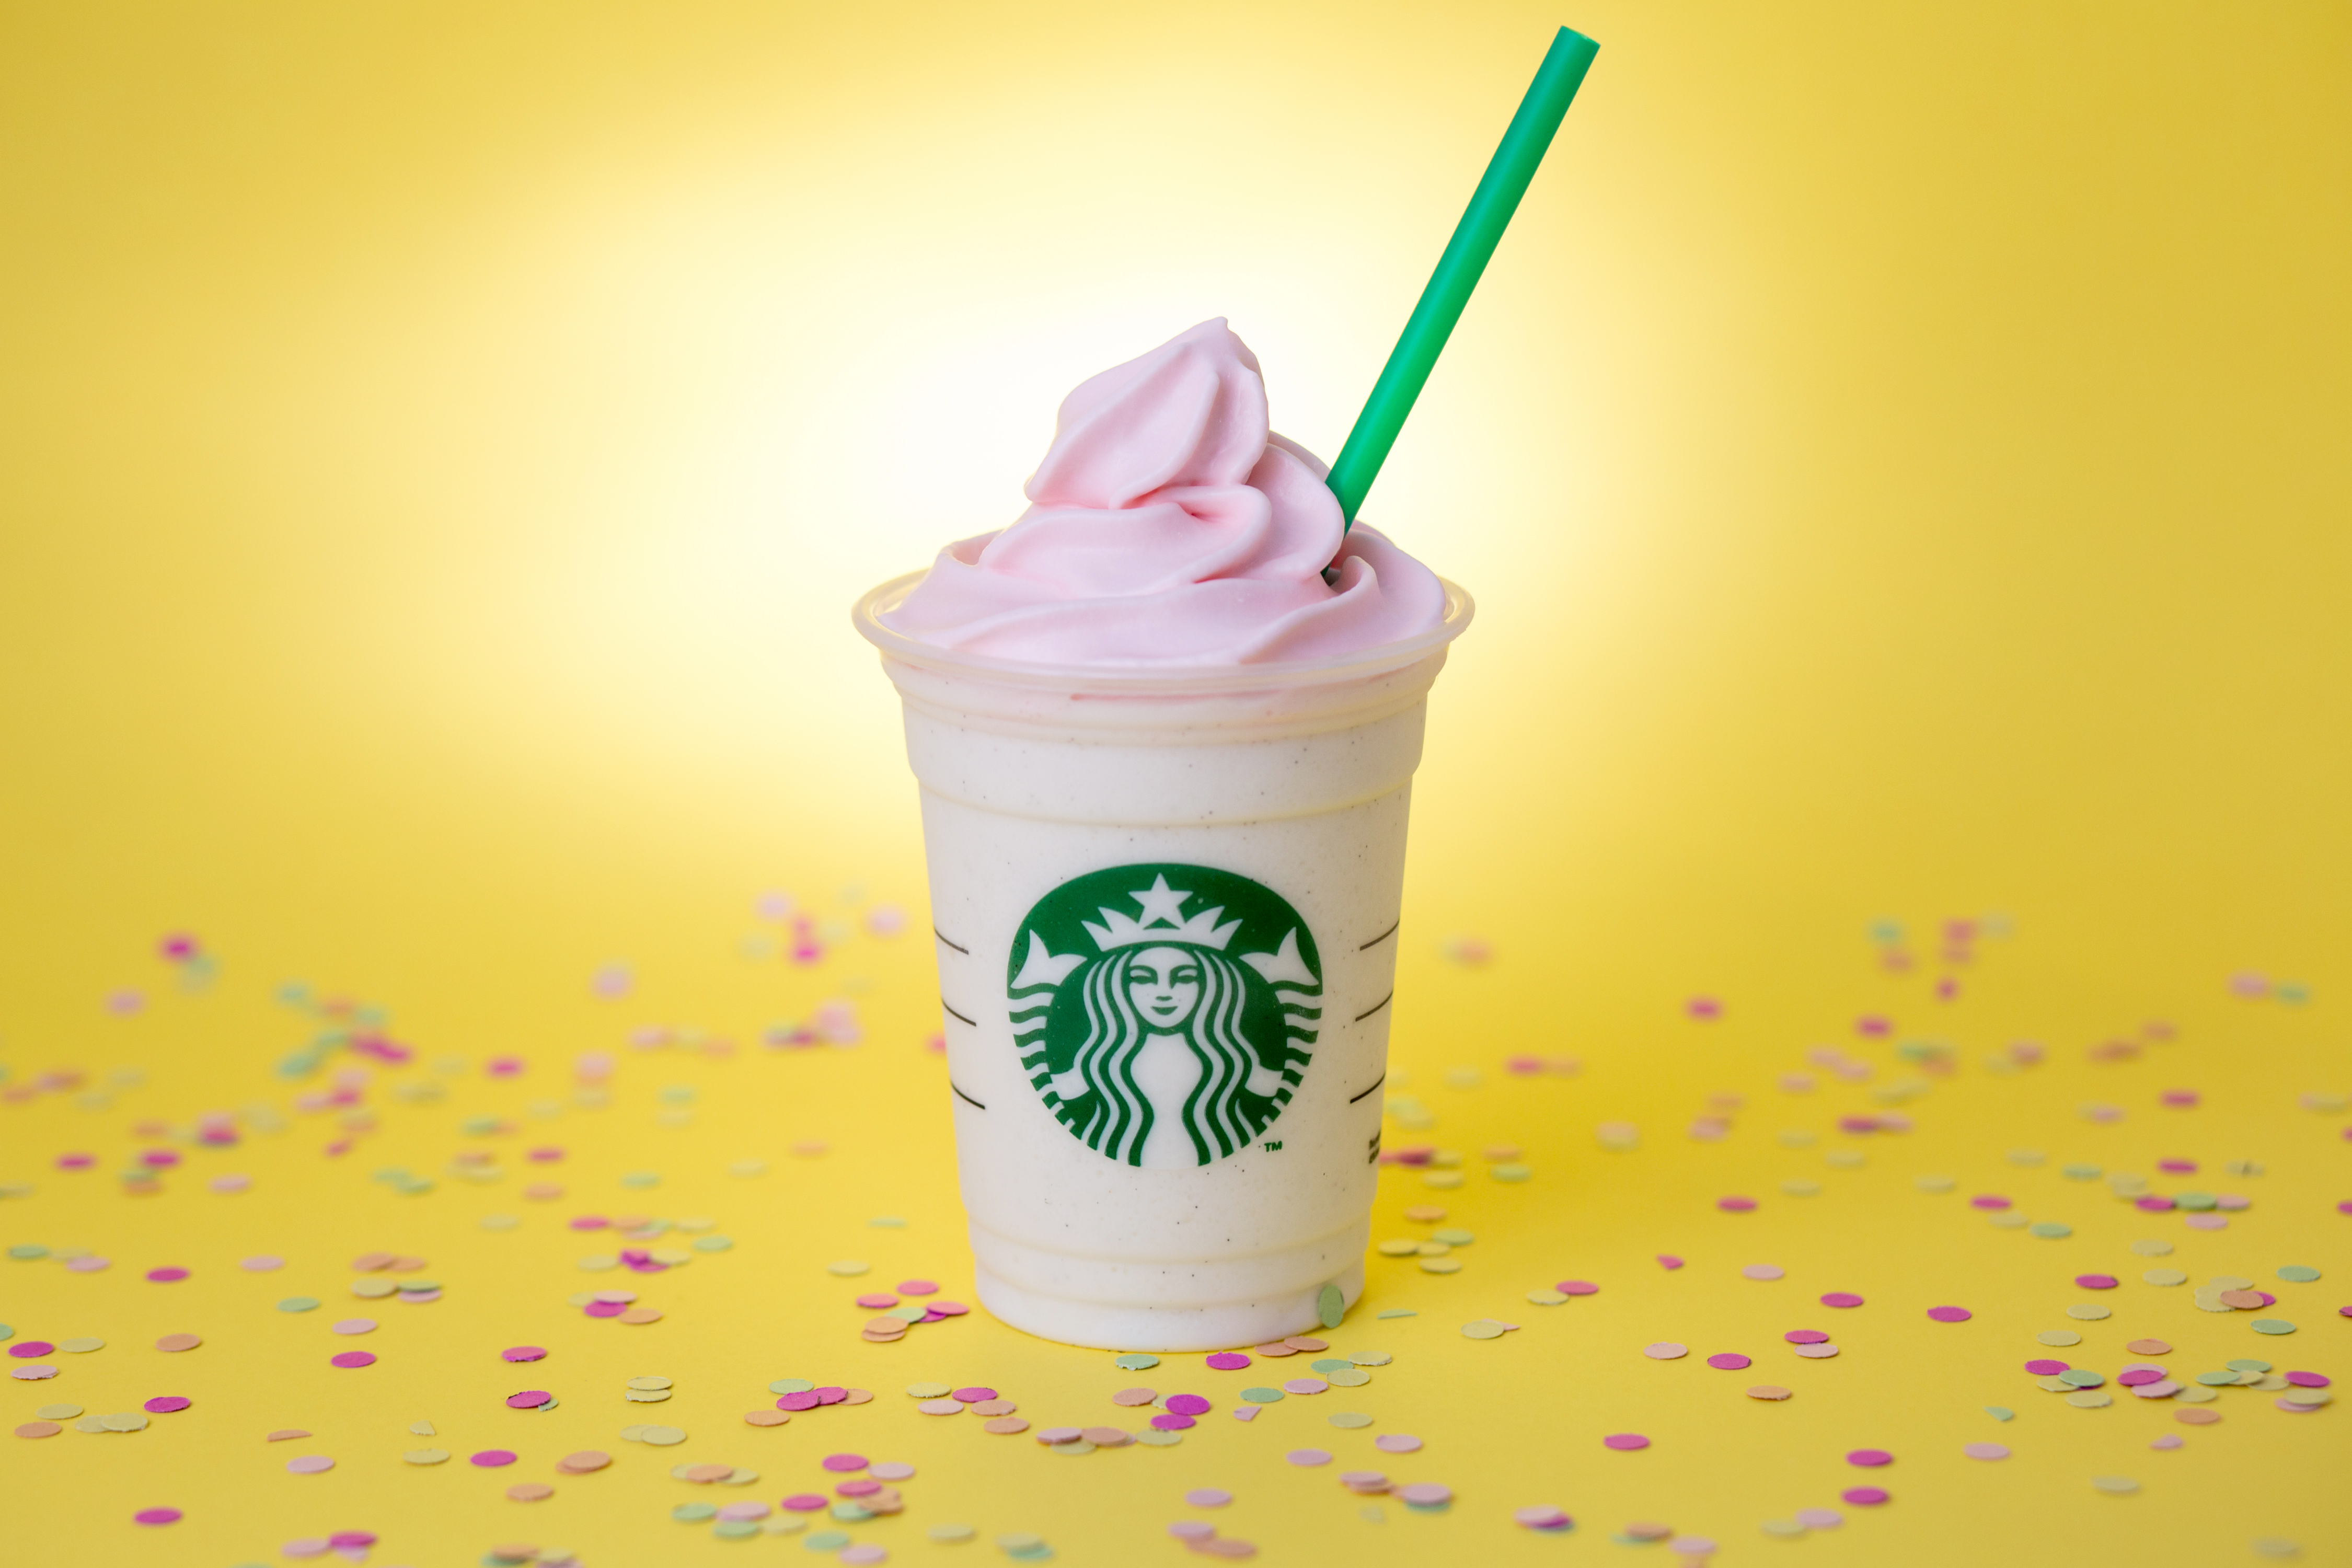 Phenomenal Starbucks Celebrates The Frappuccinos 21St With Birthday Cake Birthday Cards Printable Nowaargucafe Filternl